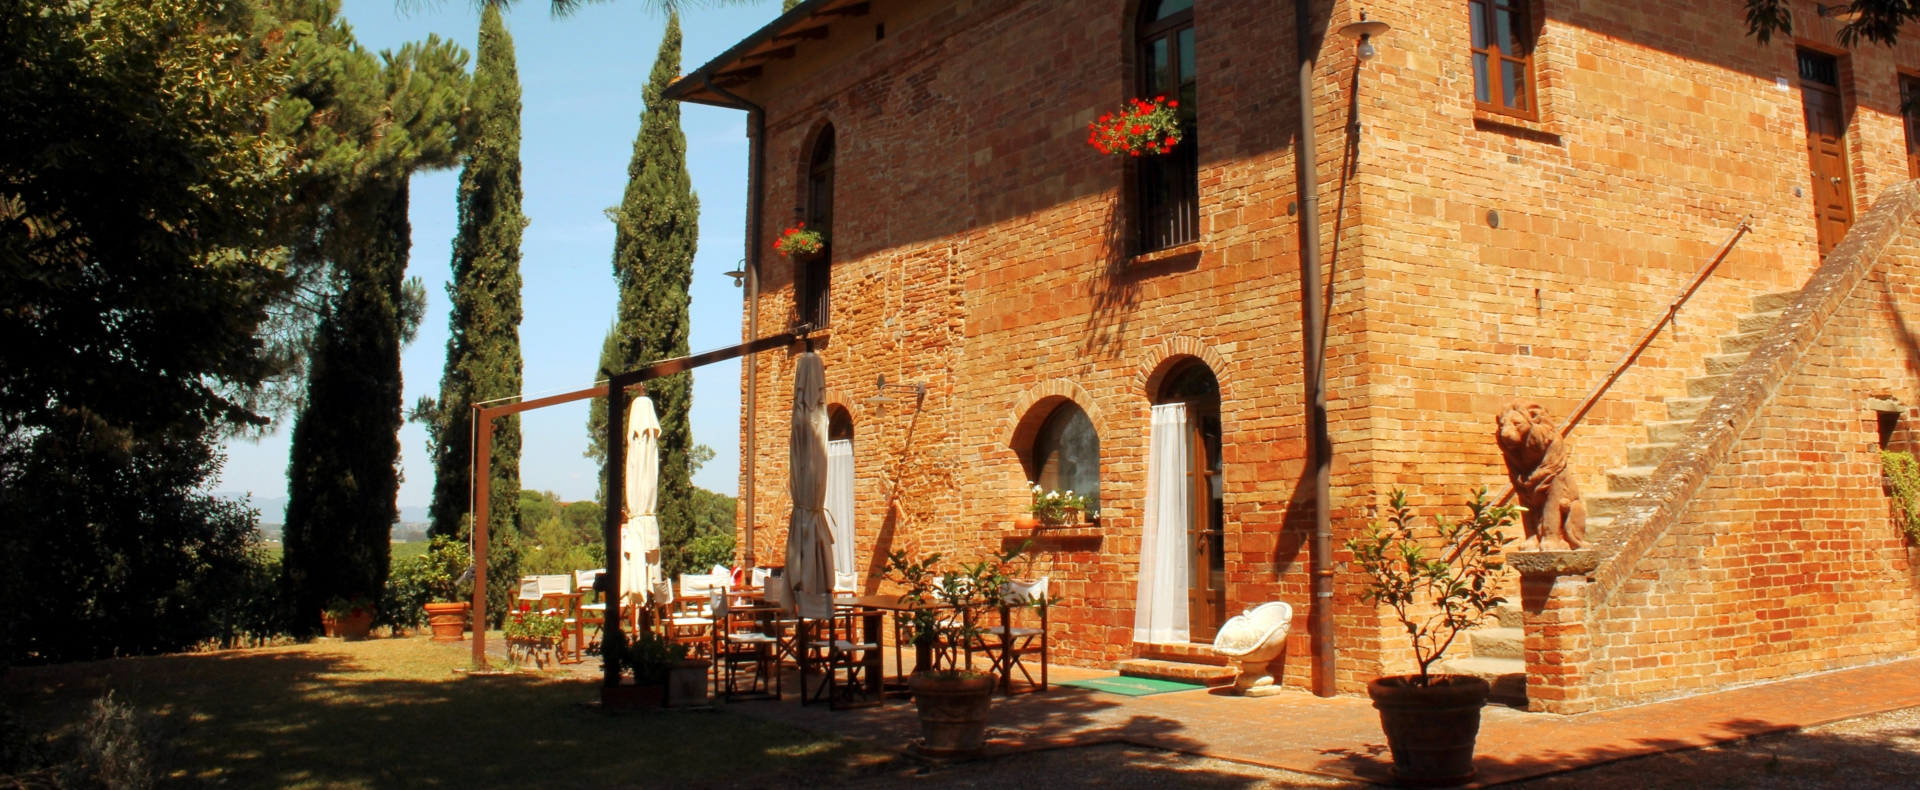 Private tour to Tuscany and Umbria in Italy